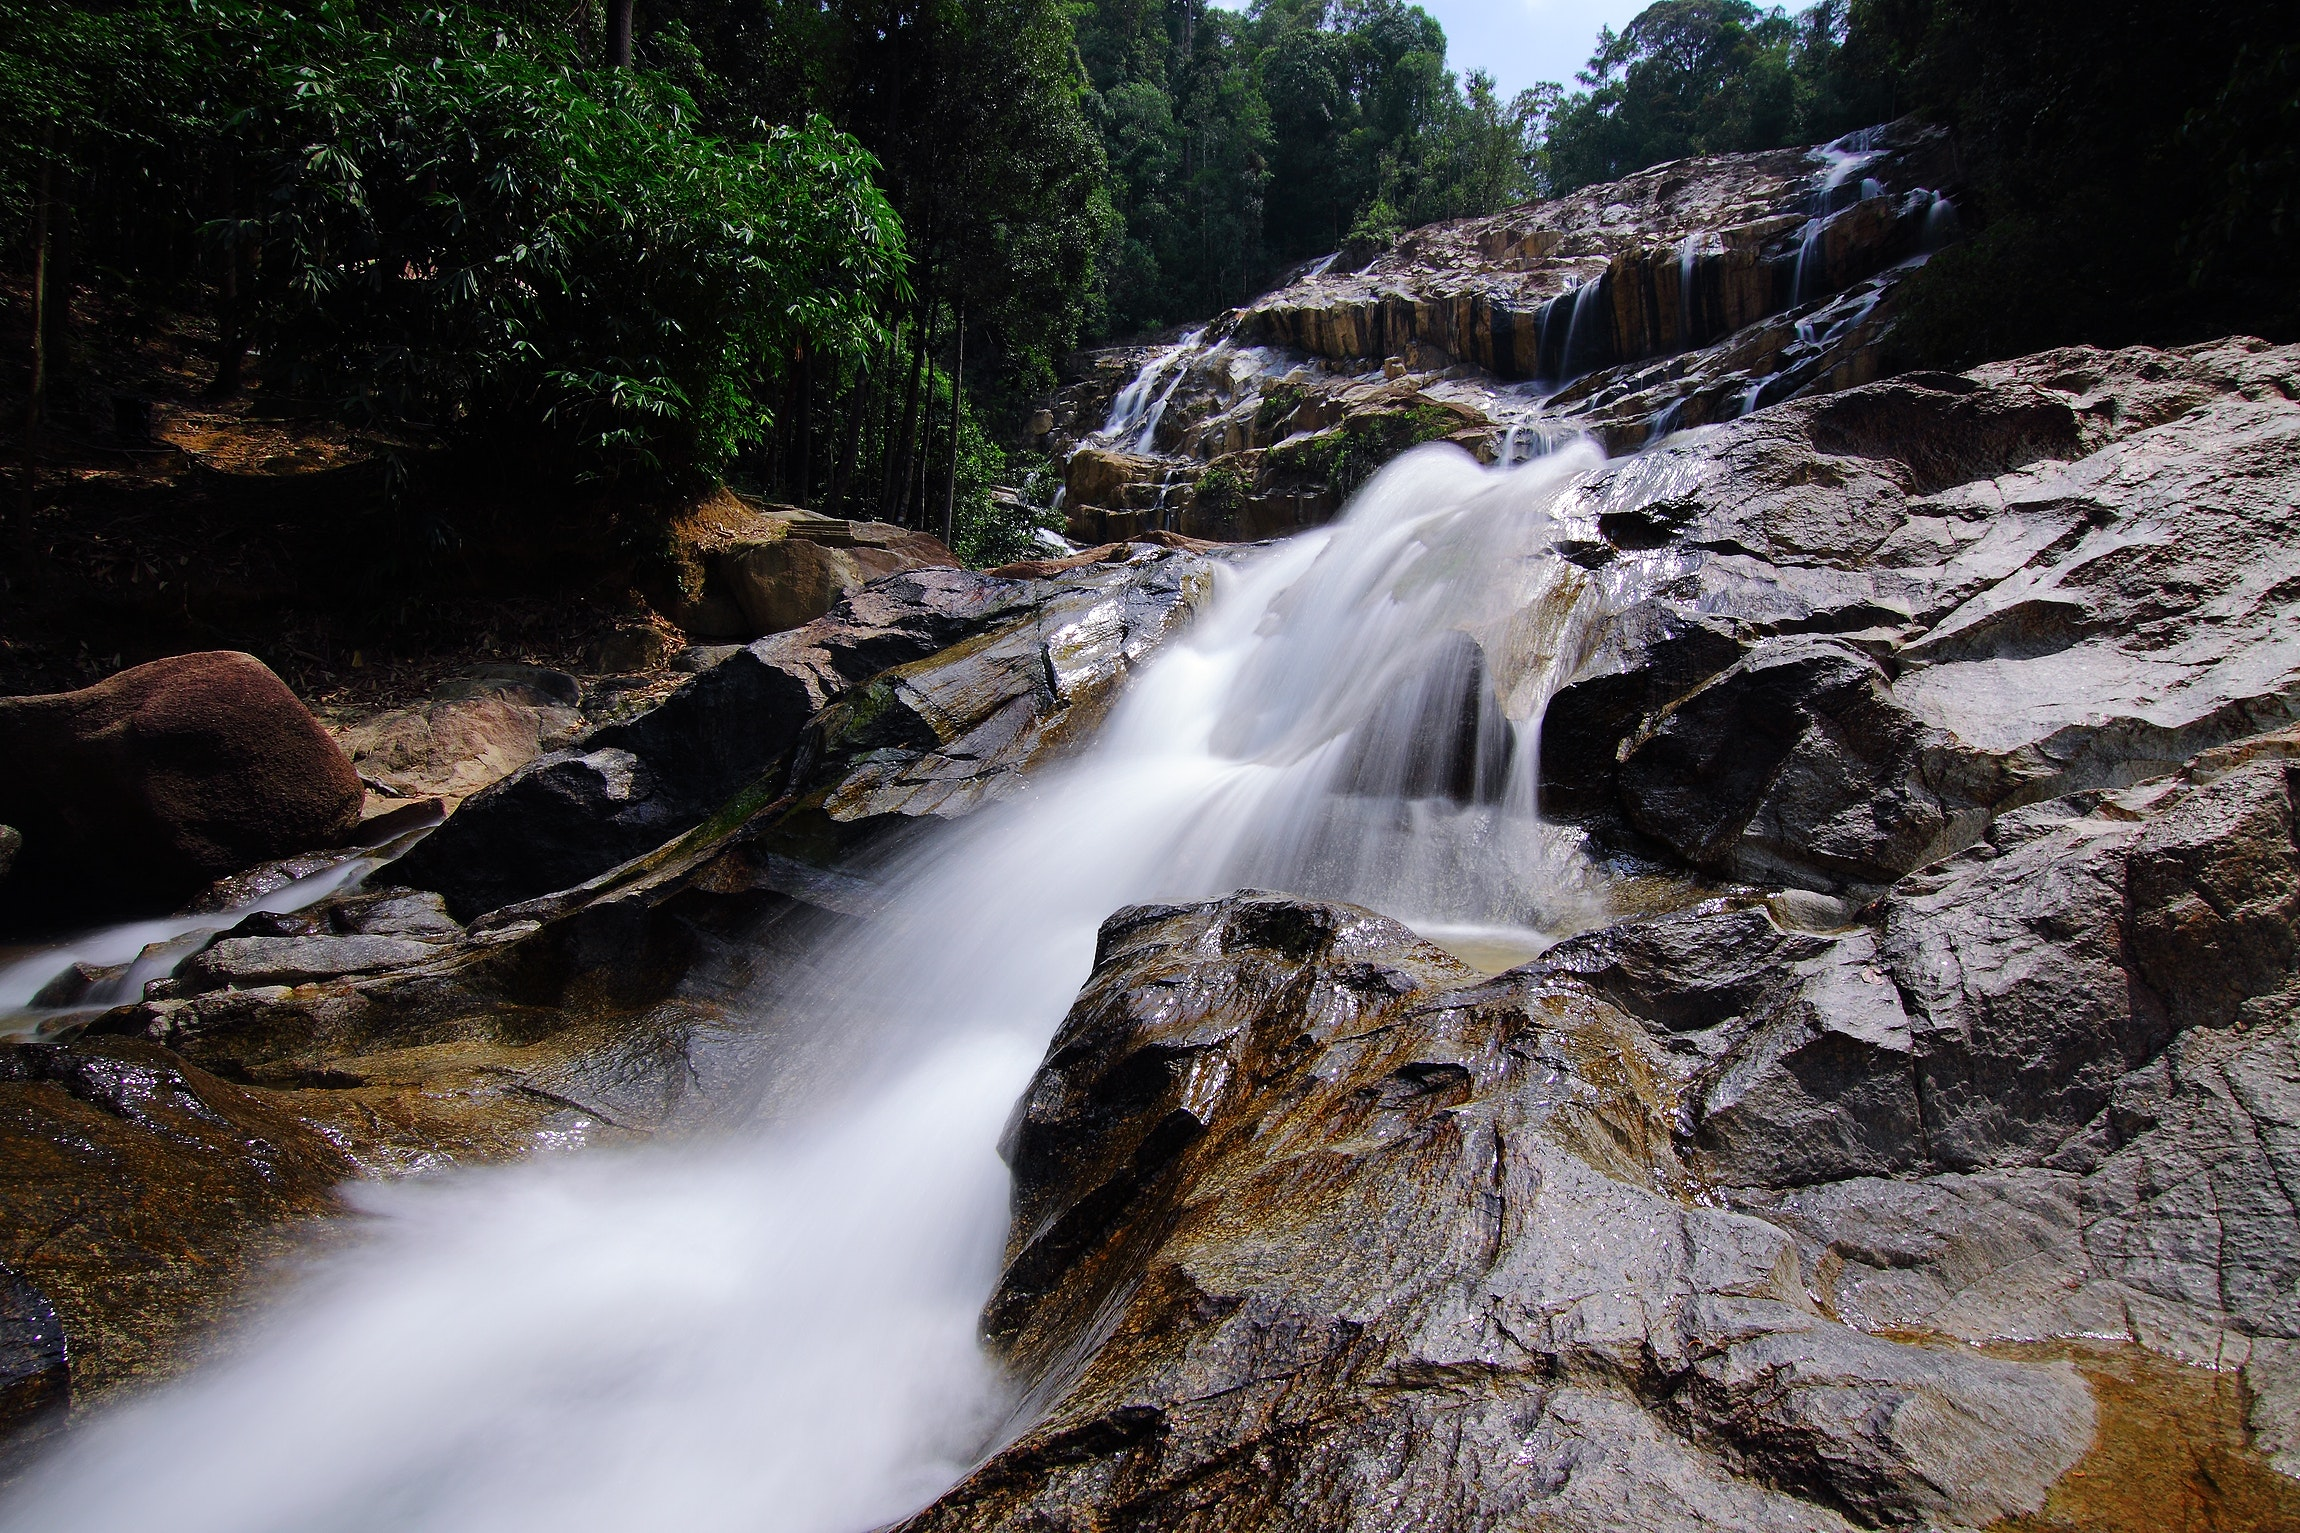 Waterfalls on rocks surrounded by trees photo